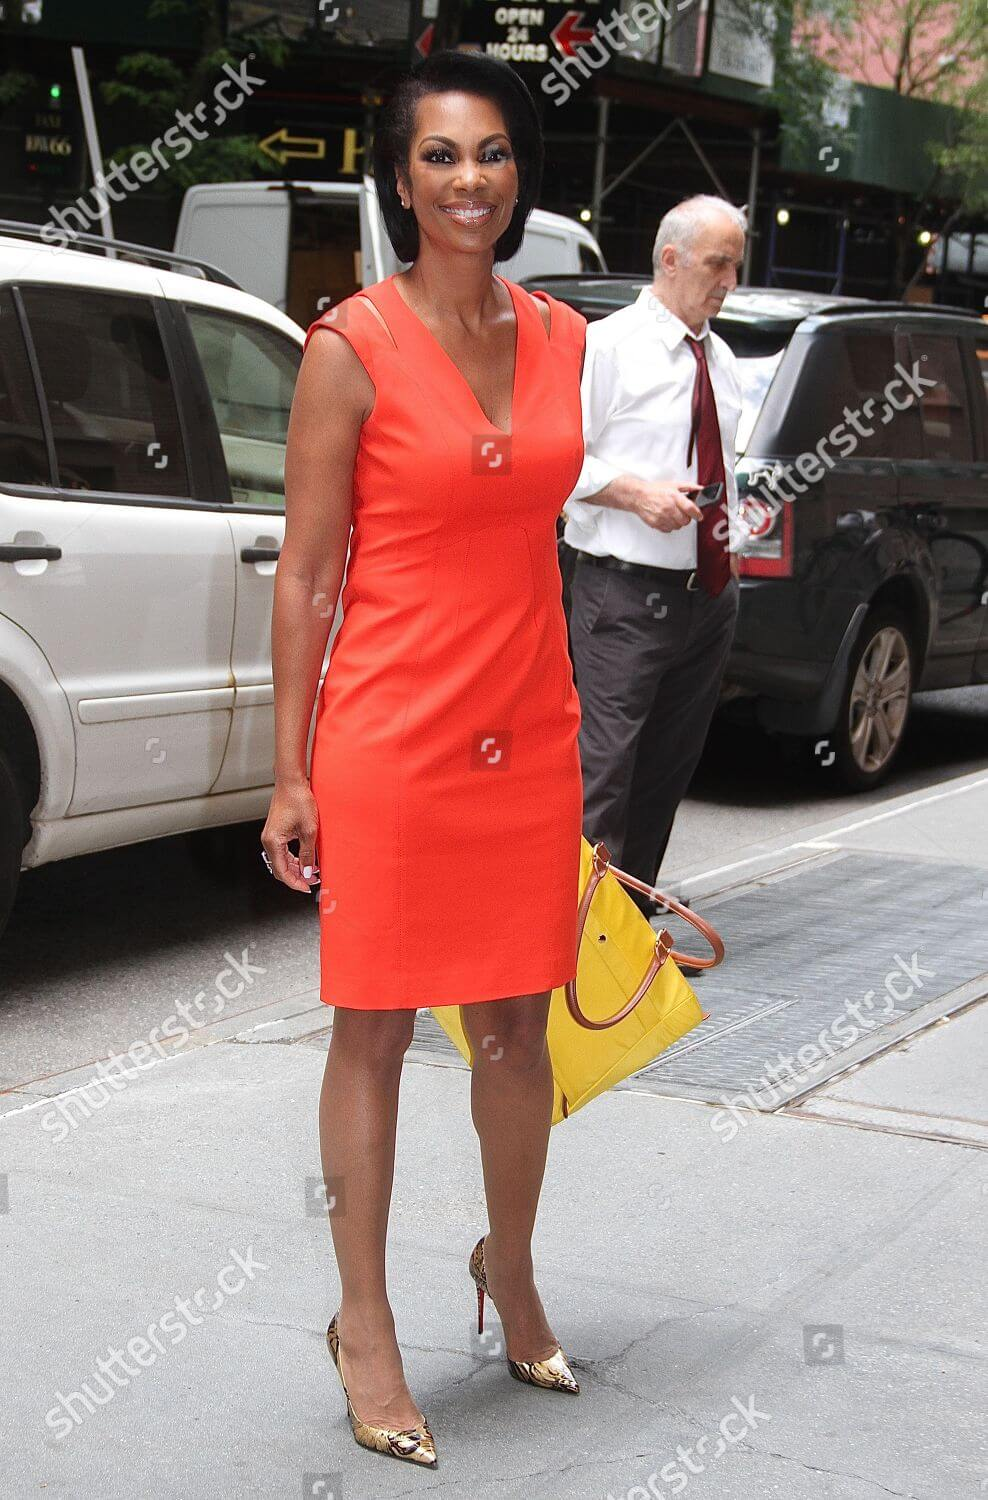 49 Hot Pictures Of Harris Faulkner Which Will Make You -4647